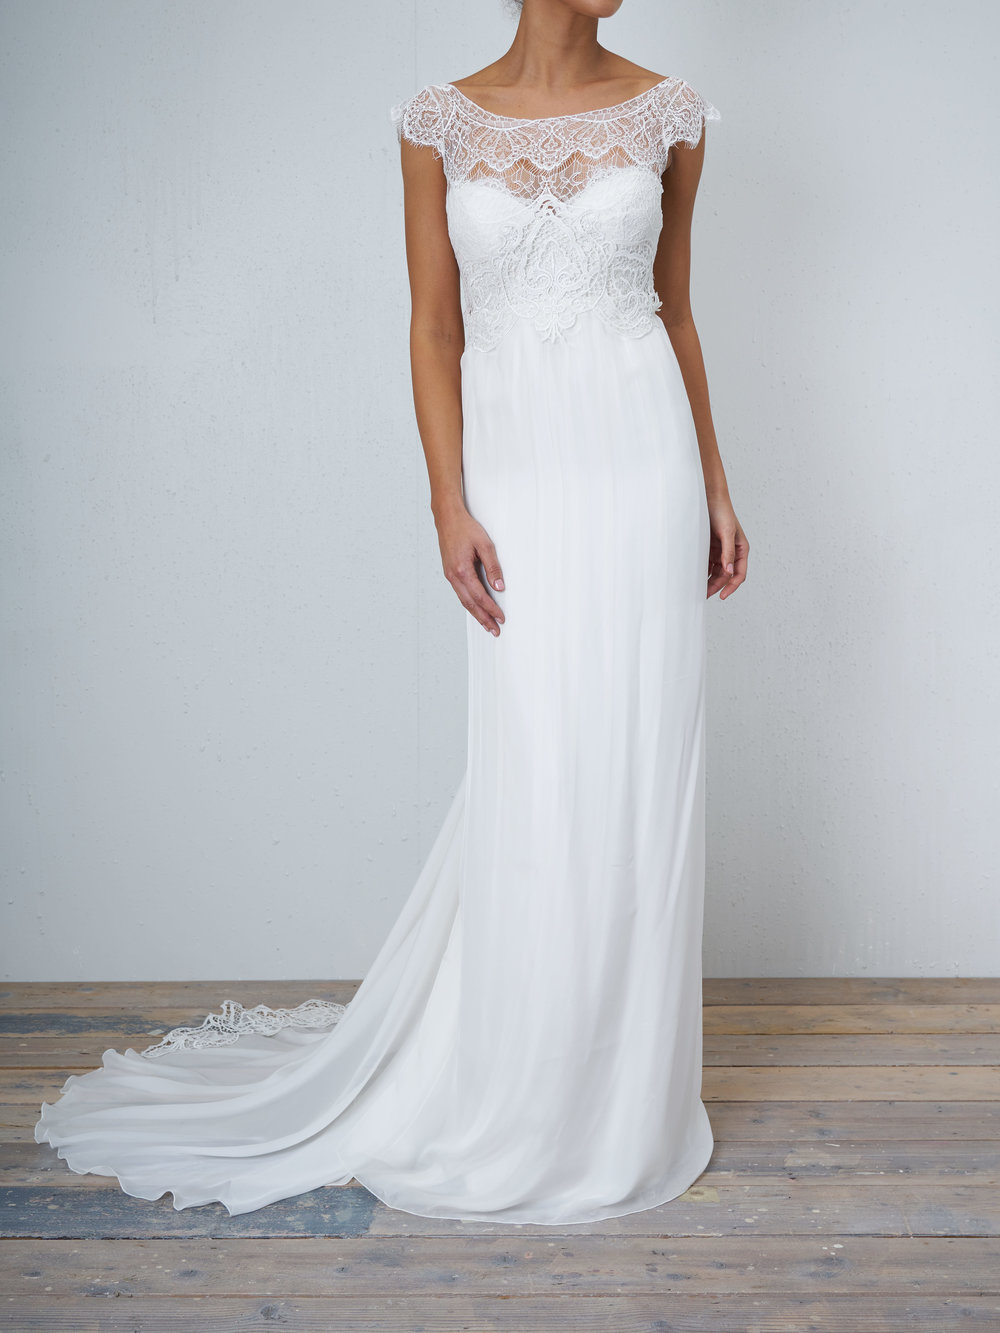 Bella Dress4039.jpg